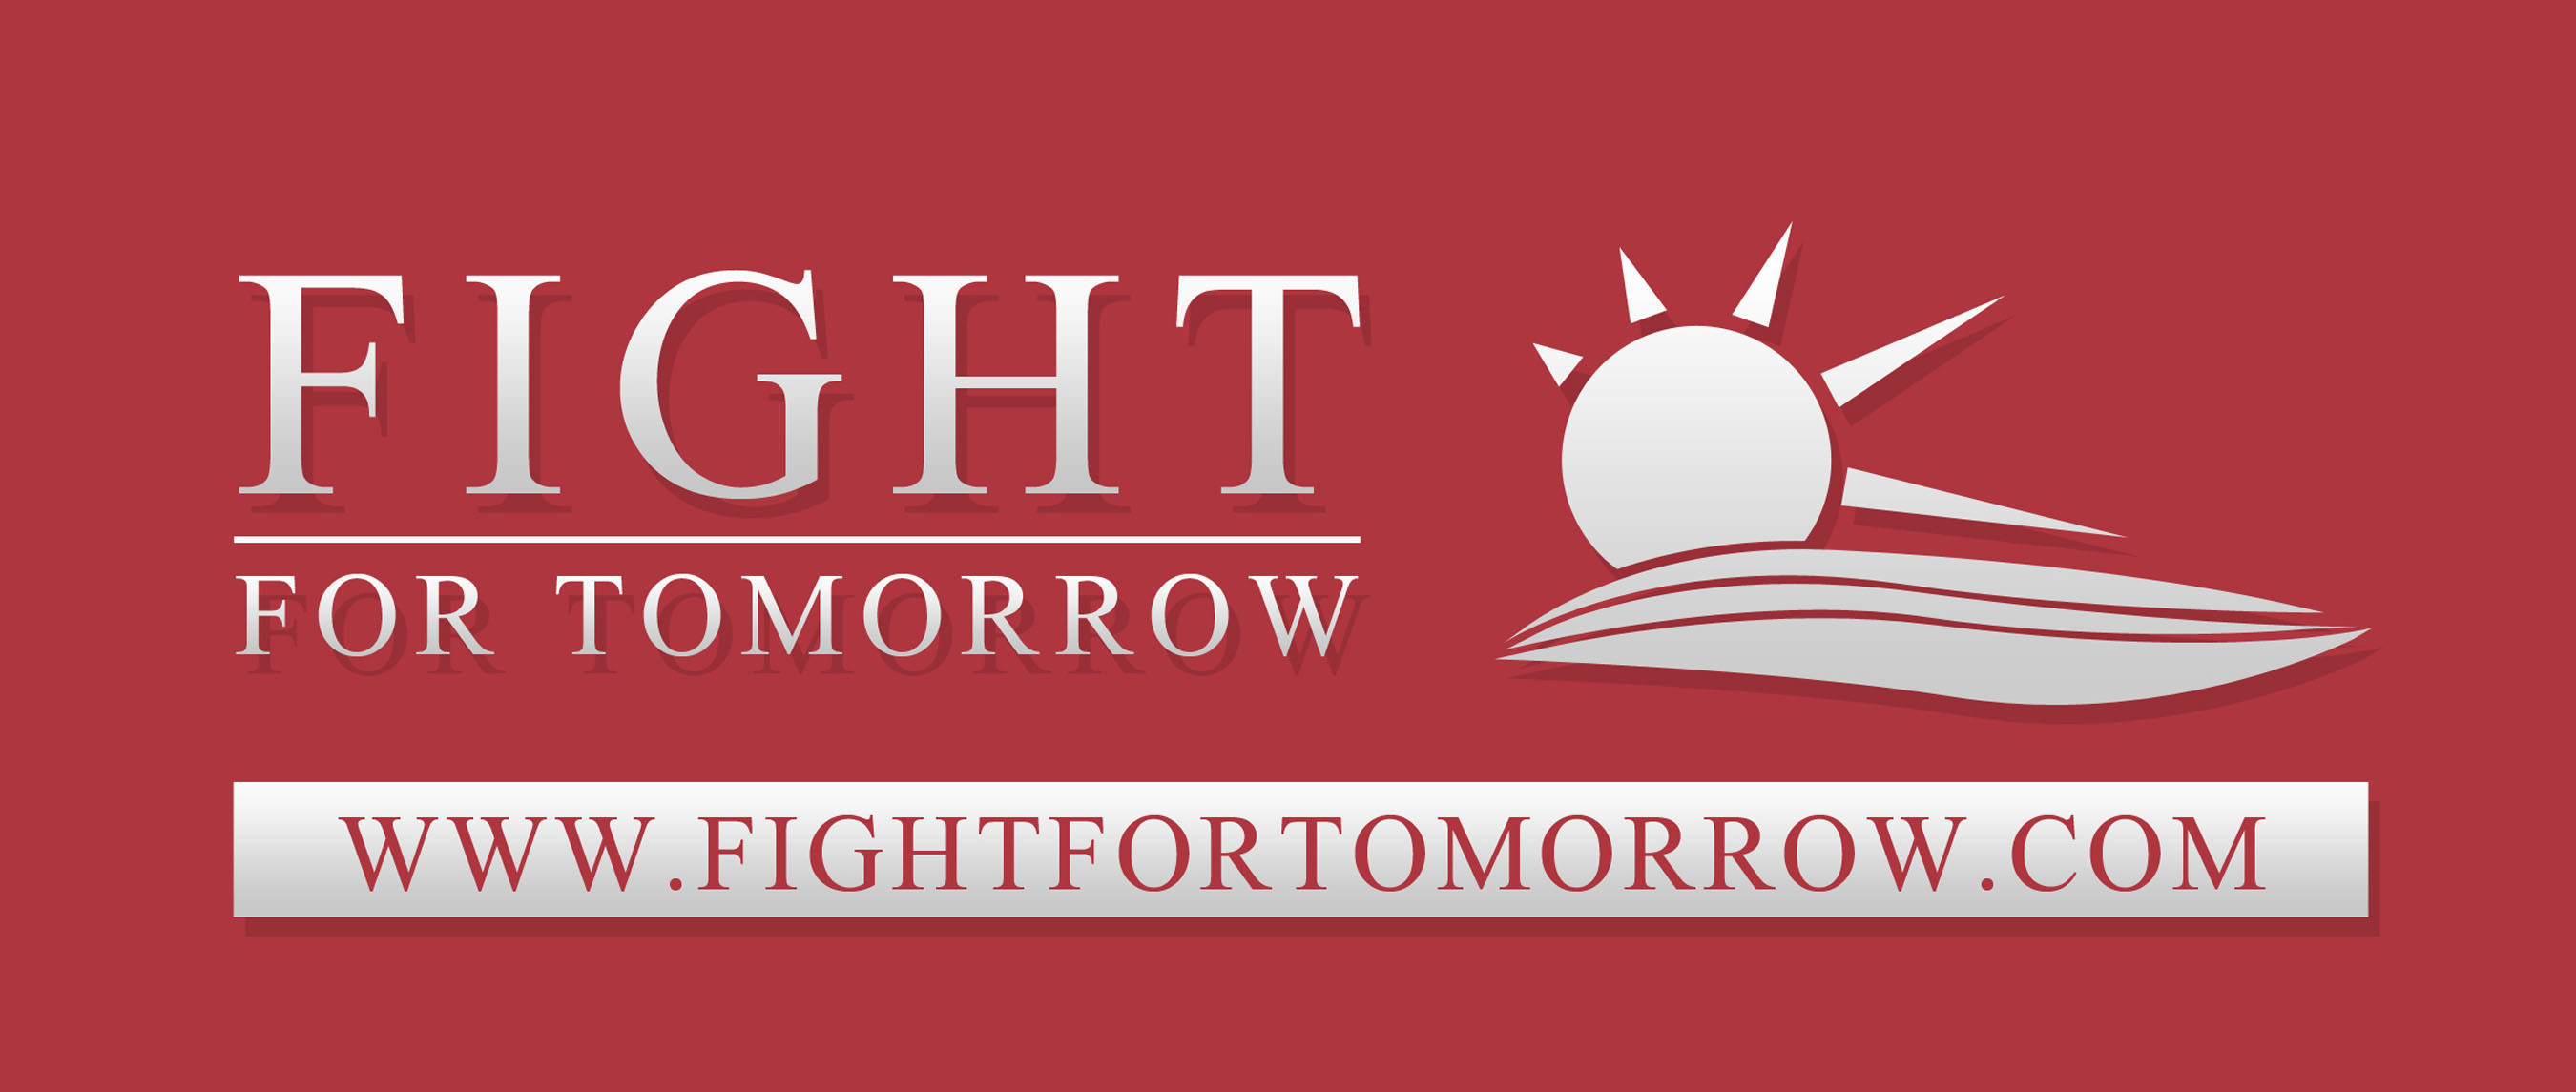 Fight For Tomorrow is working to help conservative candidates win tough races across the country. Join us: http://www.FightForTomorrow.com. (PRNewsFoto/Fight For Tomorrow) (PRNewsFoto/FIGHT FOR TOMORROW)